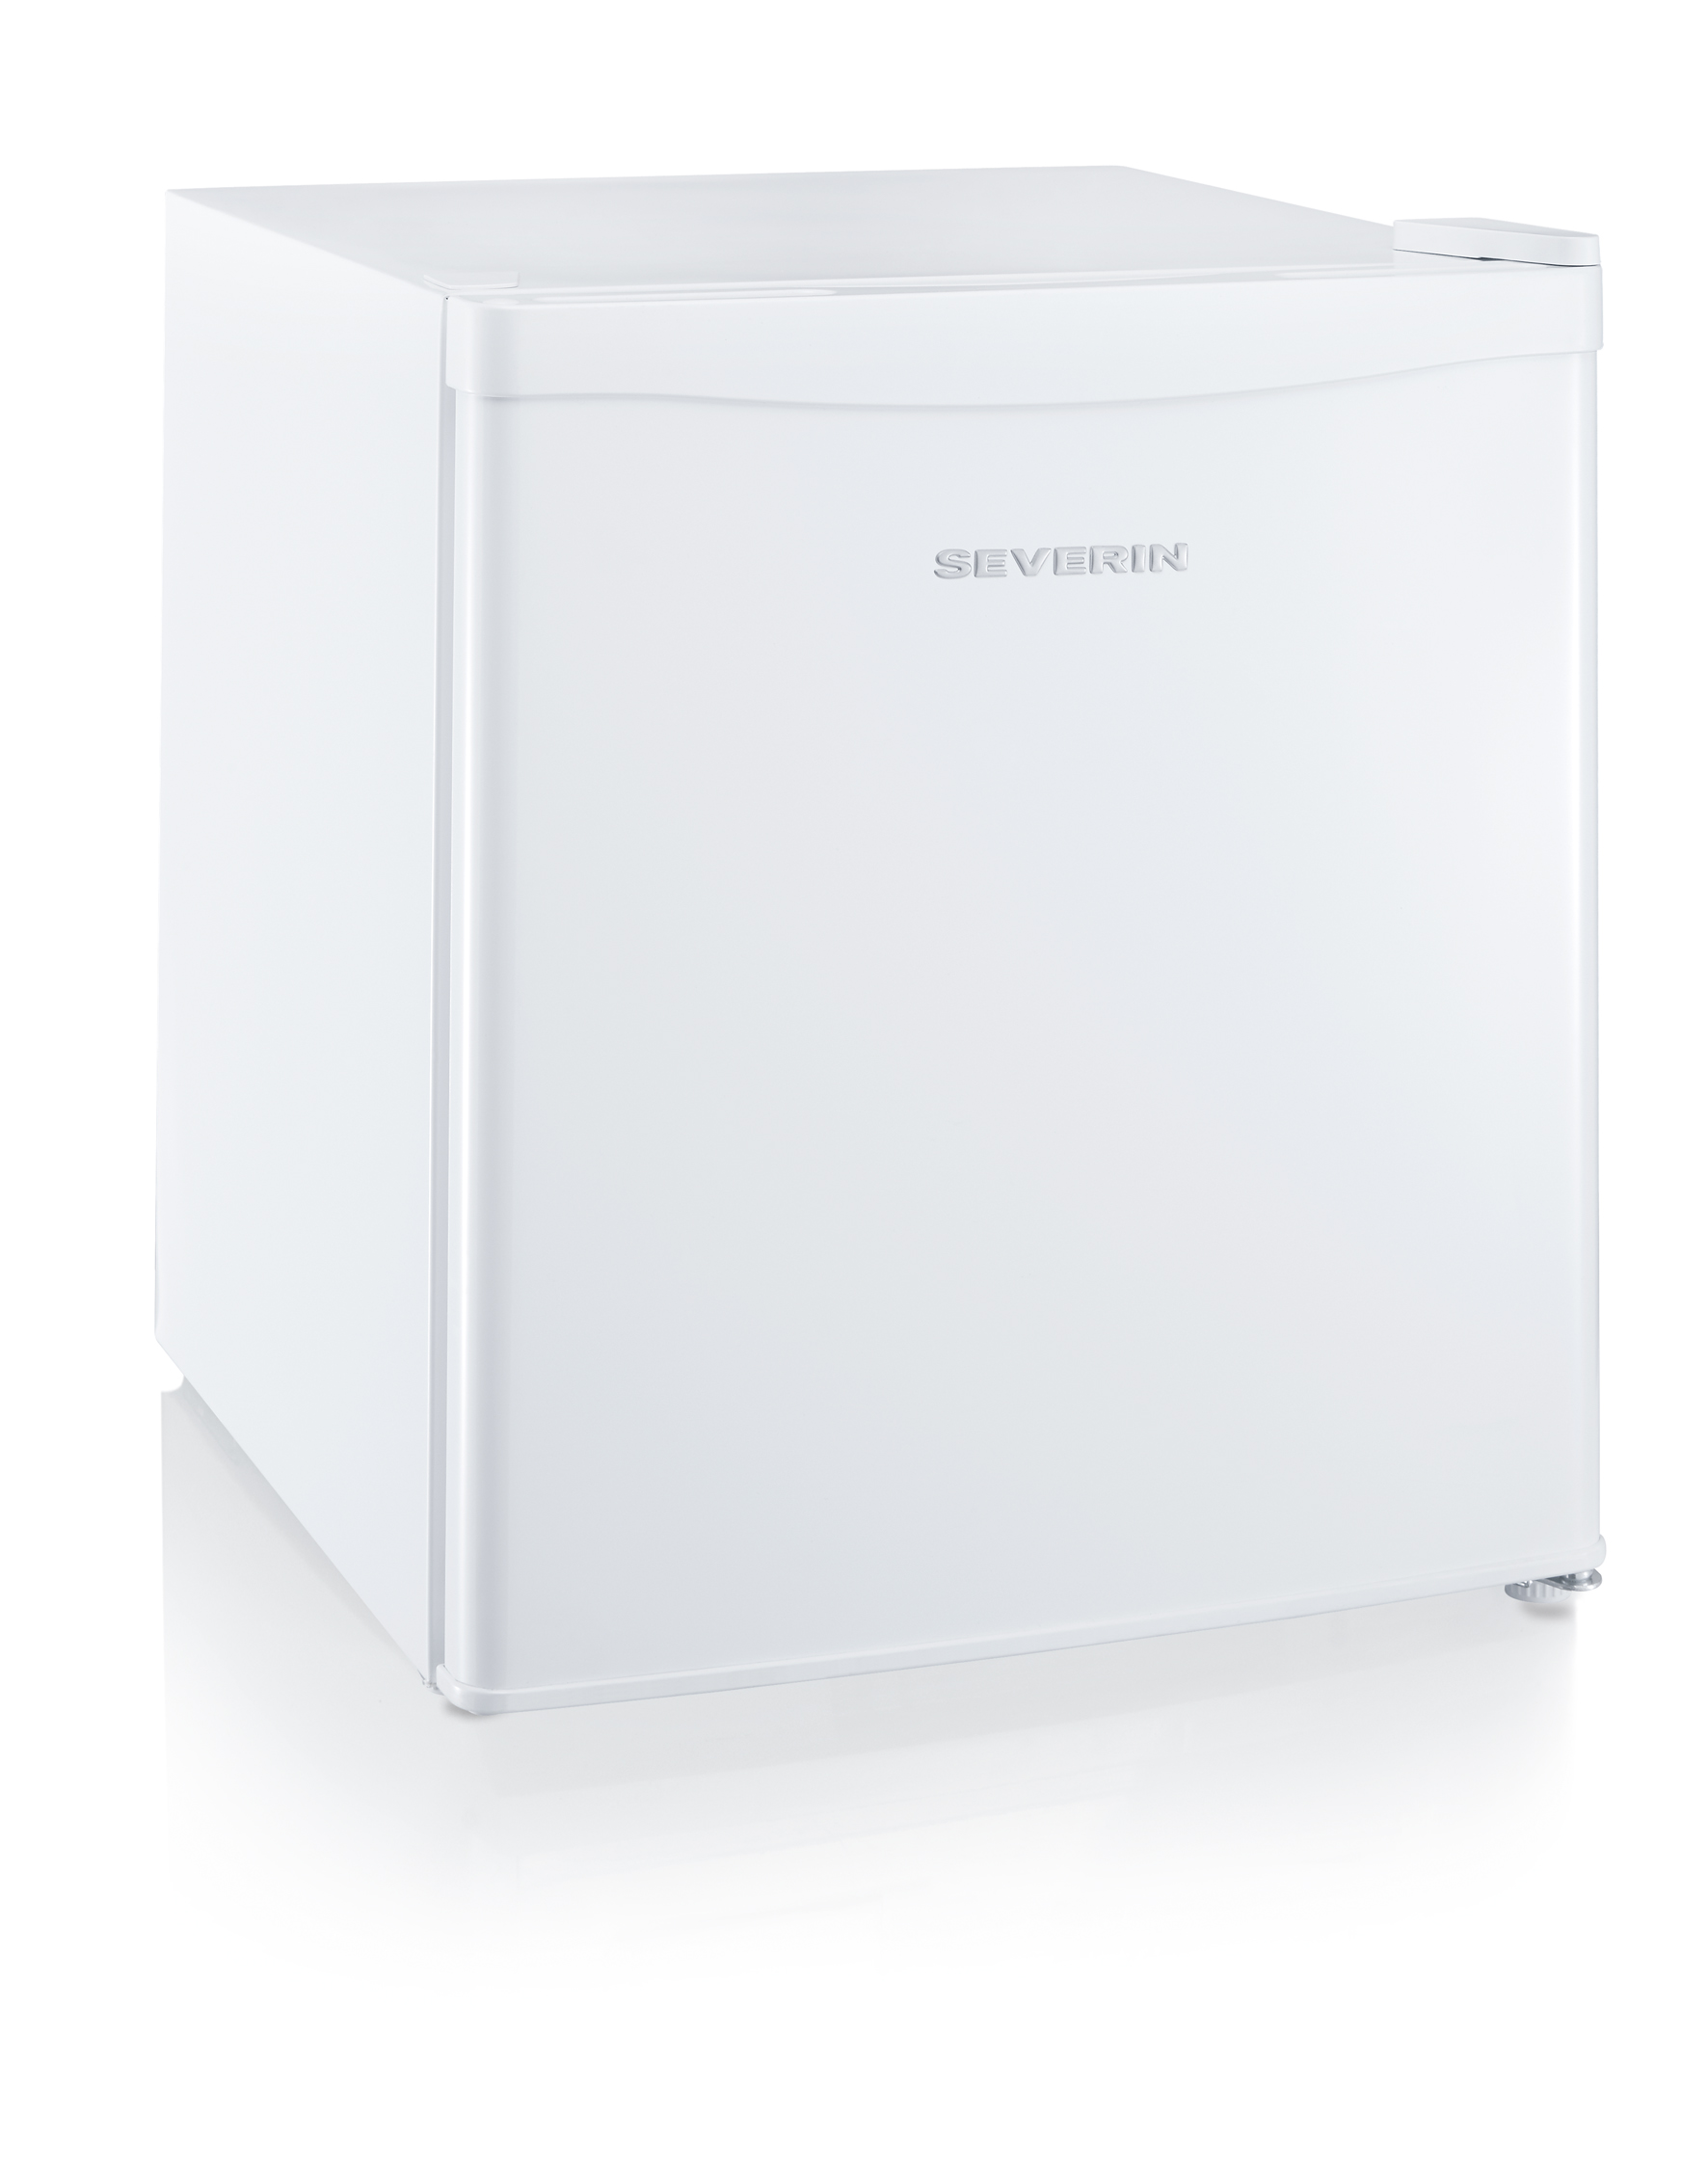 FRIGO BOX SEVERIN KS 9827